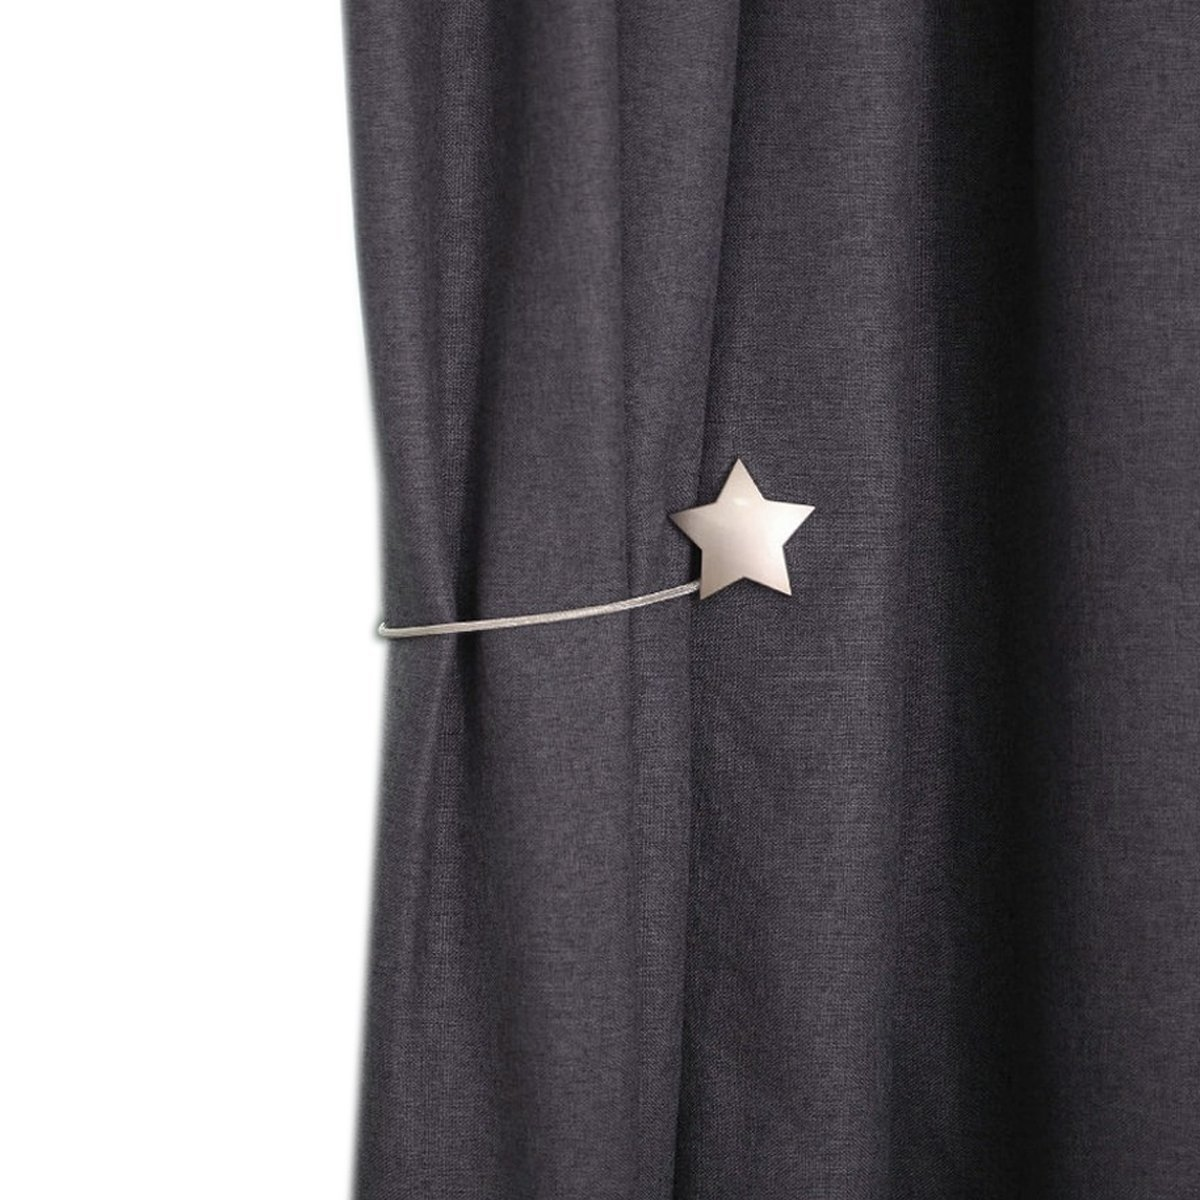 YING CHIC YYC 1Pair New Alloy Star Magnetic Curtain Tieback Decor Curtain Buckle Drapery Holder (Silver)